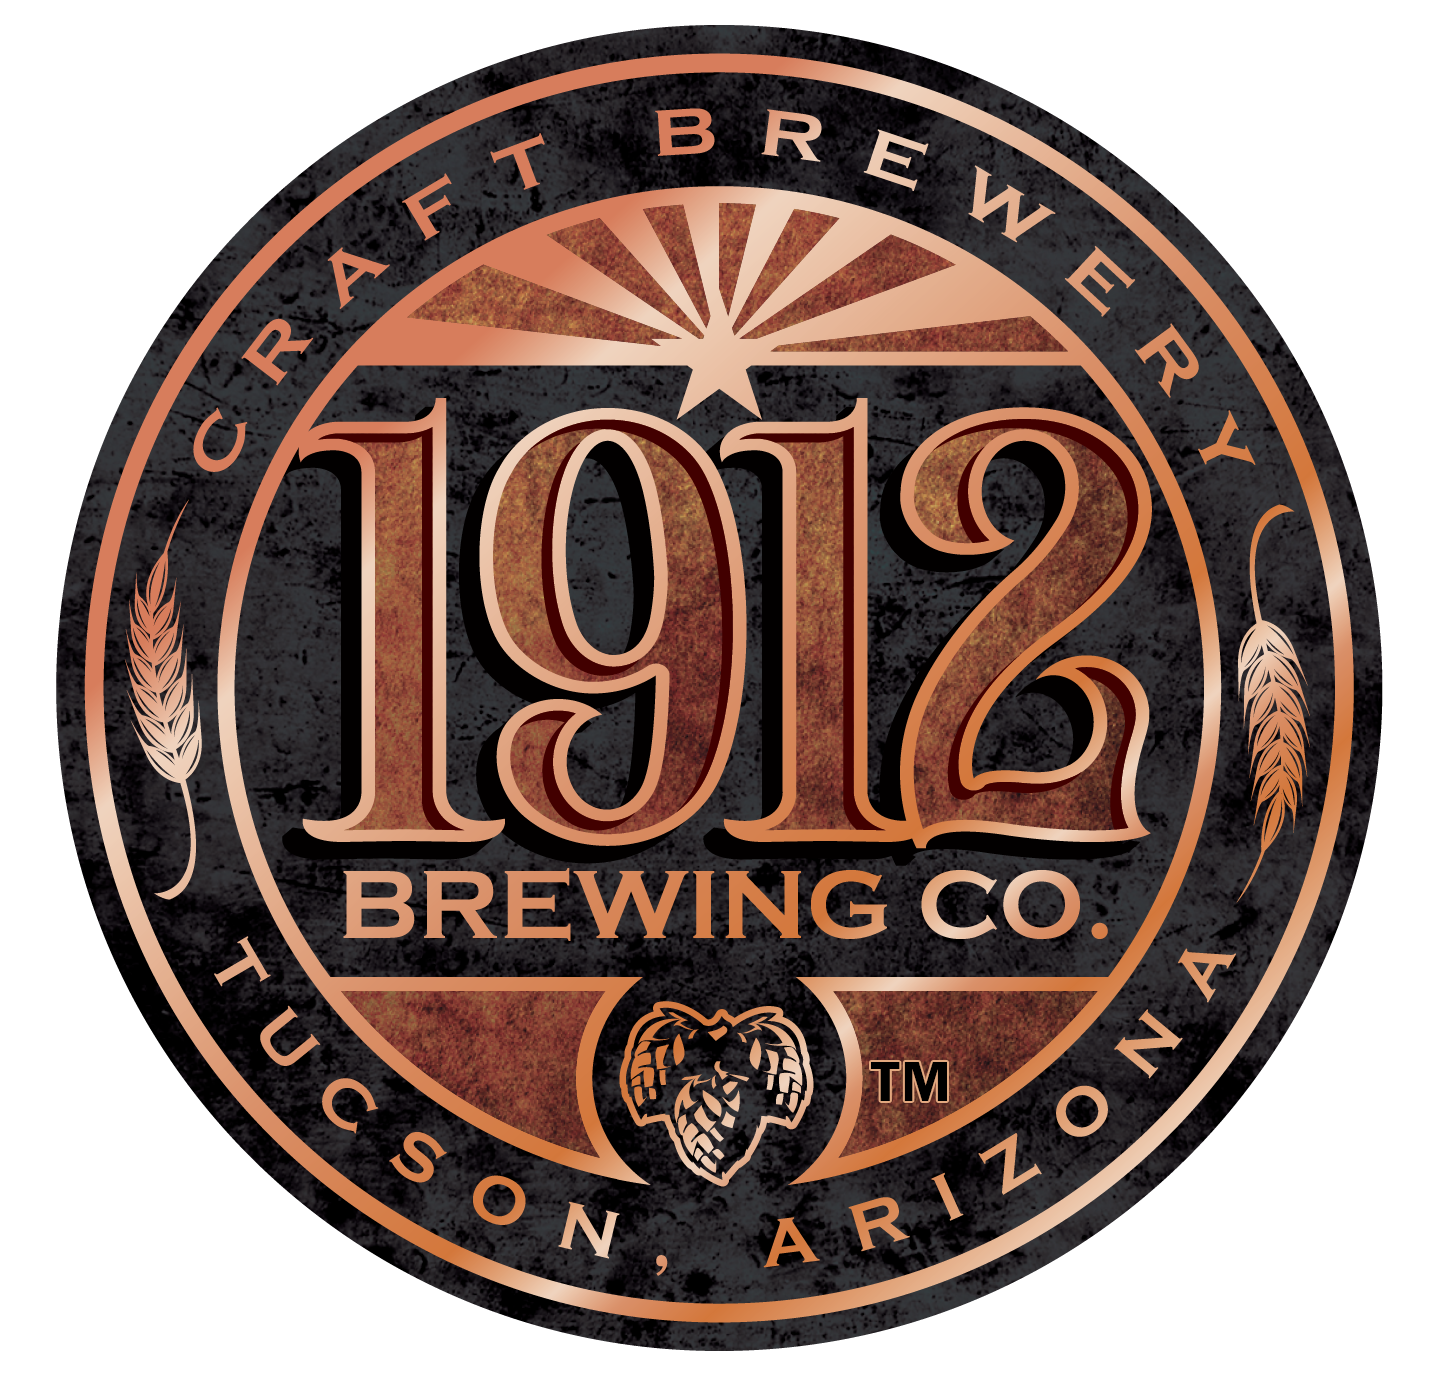 1912 Brewing – Tucson Craft Brewery